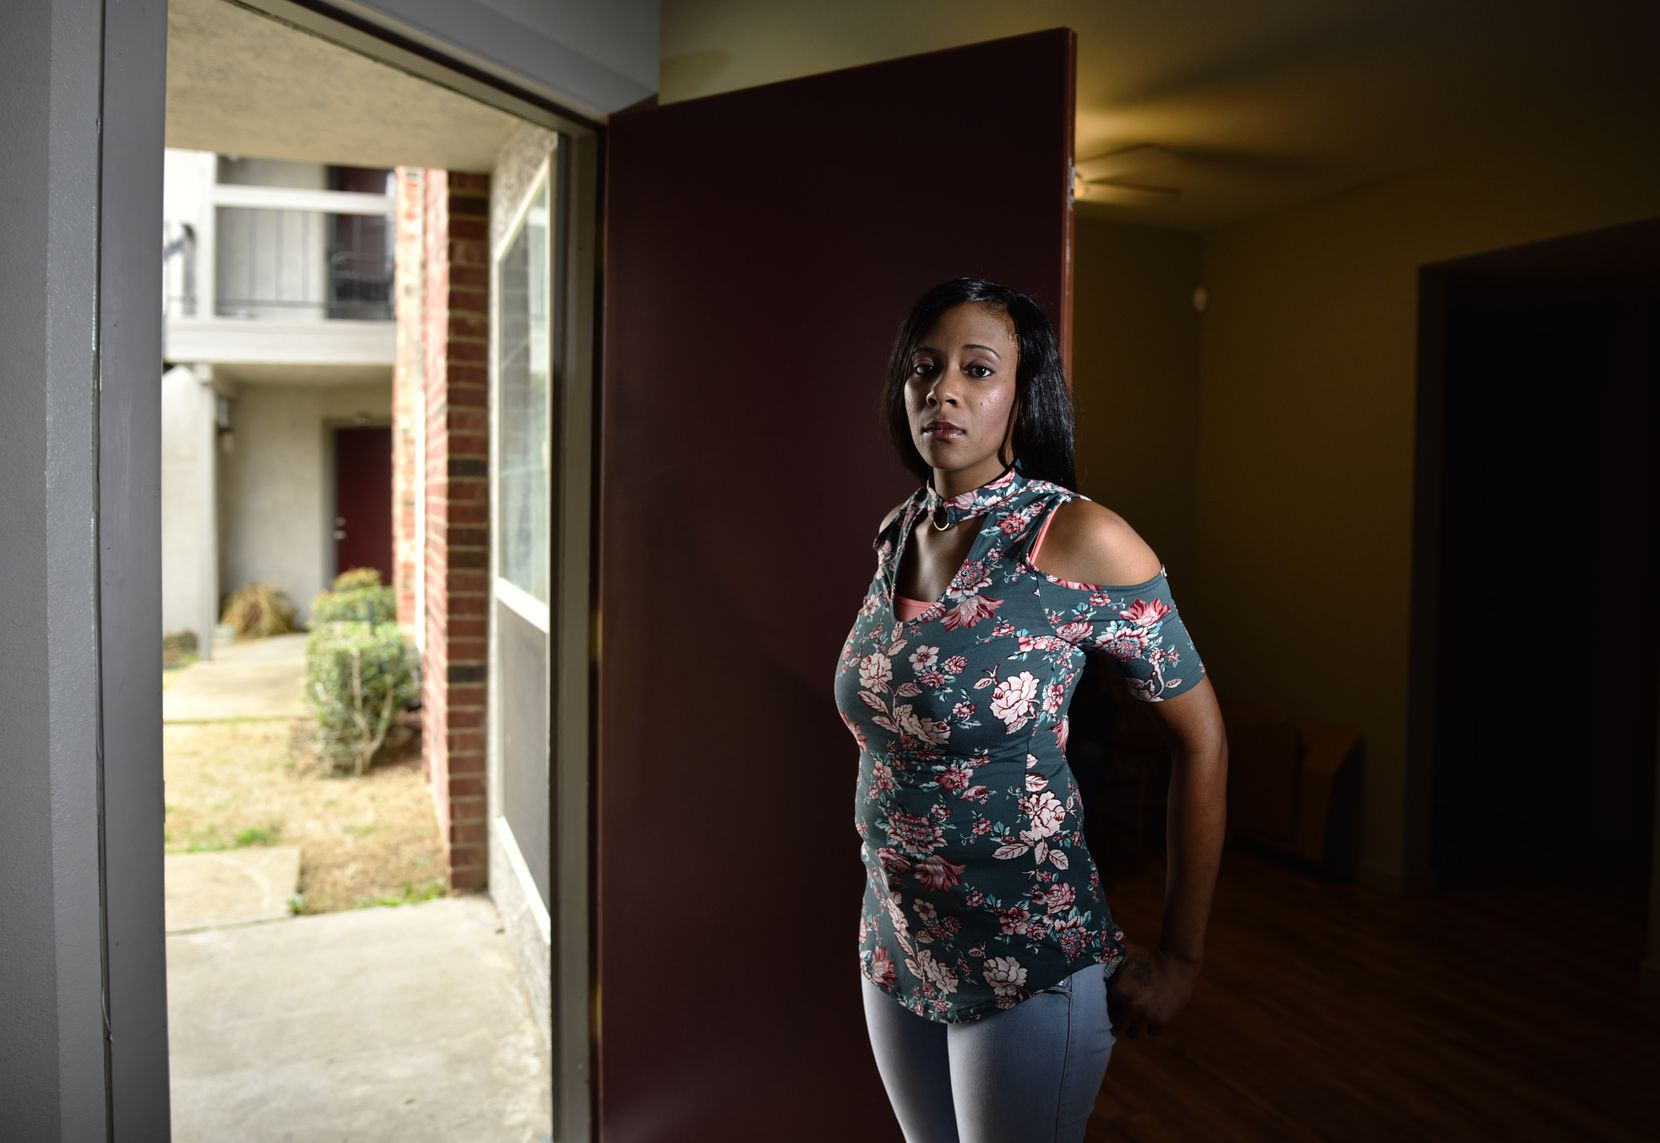 Shakena Walston, 29, originally from Tulsa, Okla., stands at the doorway of her apartment in Dallas. Walston is one of the plaintiffs in a lawsuit alleging the Dallas County jail's cash bail system unfairly harms poor people. She was jailed on accusations of assault for her involvement in a domestic dispute. Her bail was set at $15,000.